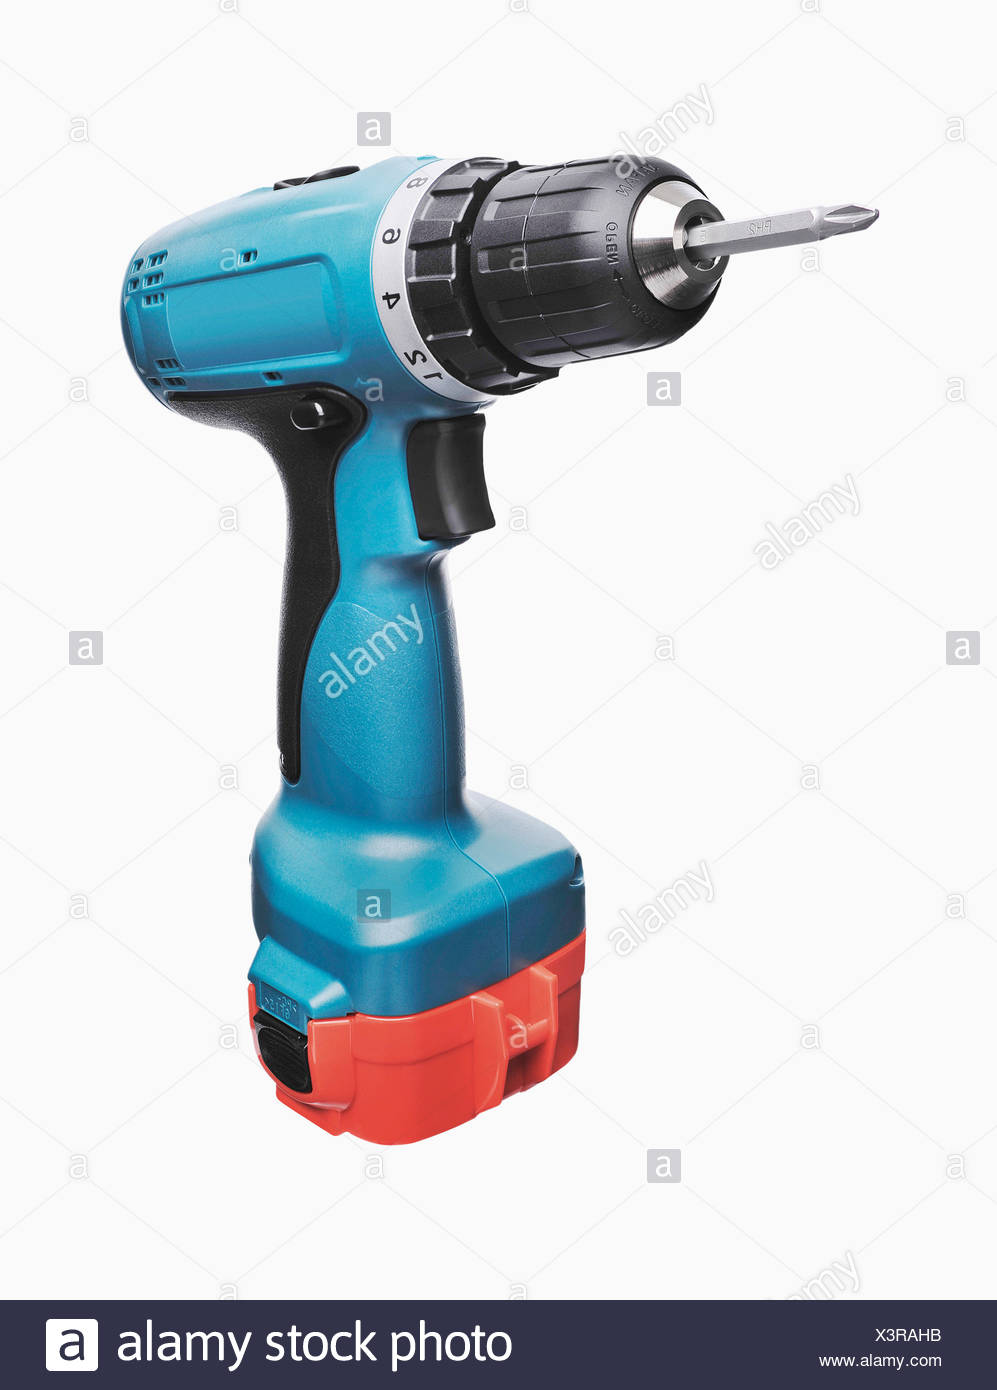 Cordless screwdriver against white background, close up - Stock Image